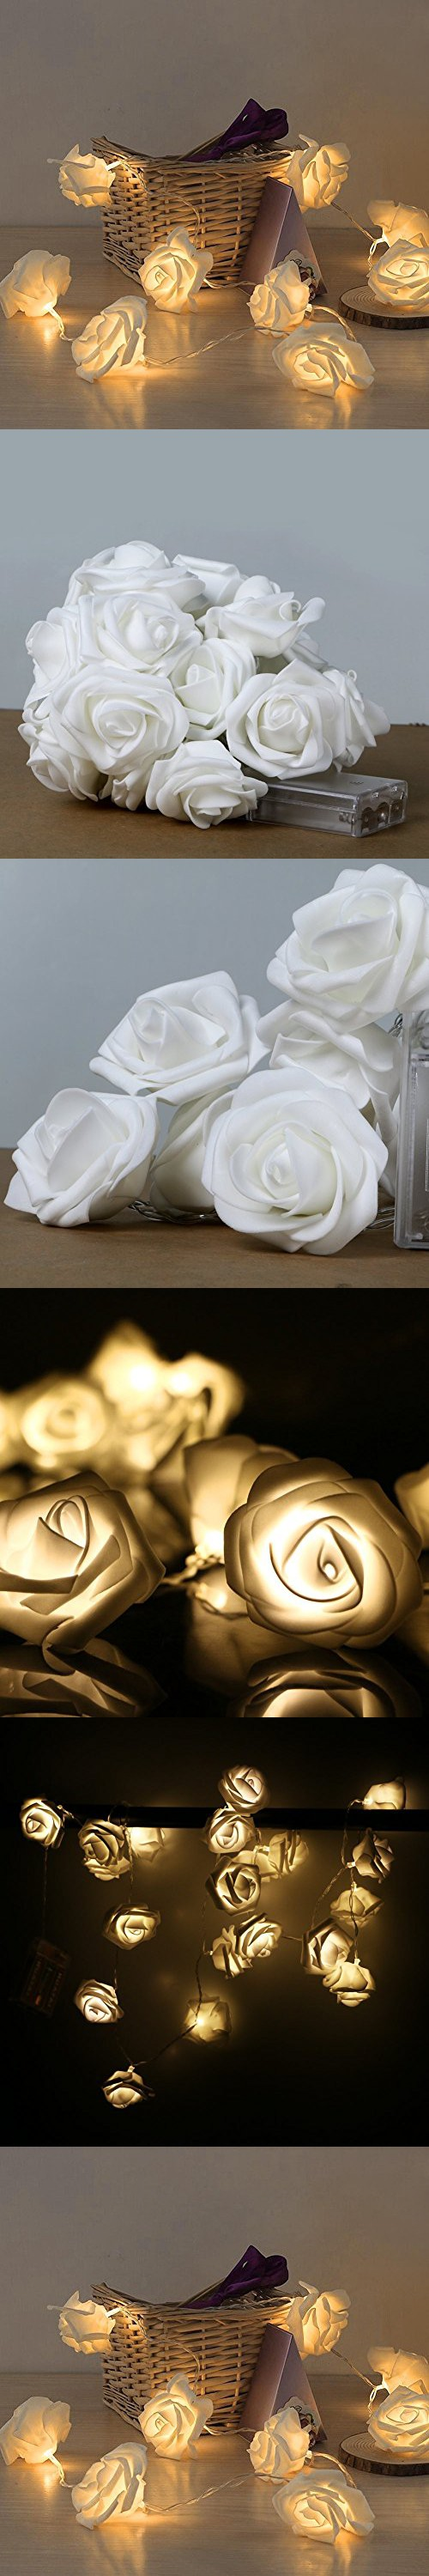 Lily's Gift 20LED Warm White Rose Flower Fairy String Lights Clear Cable Battery Powered for Valentine's, Wedding, Bedroom, Indoor Decoration